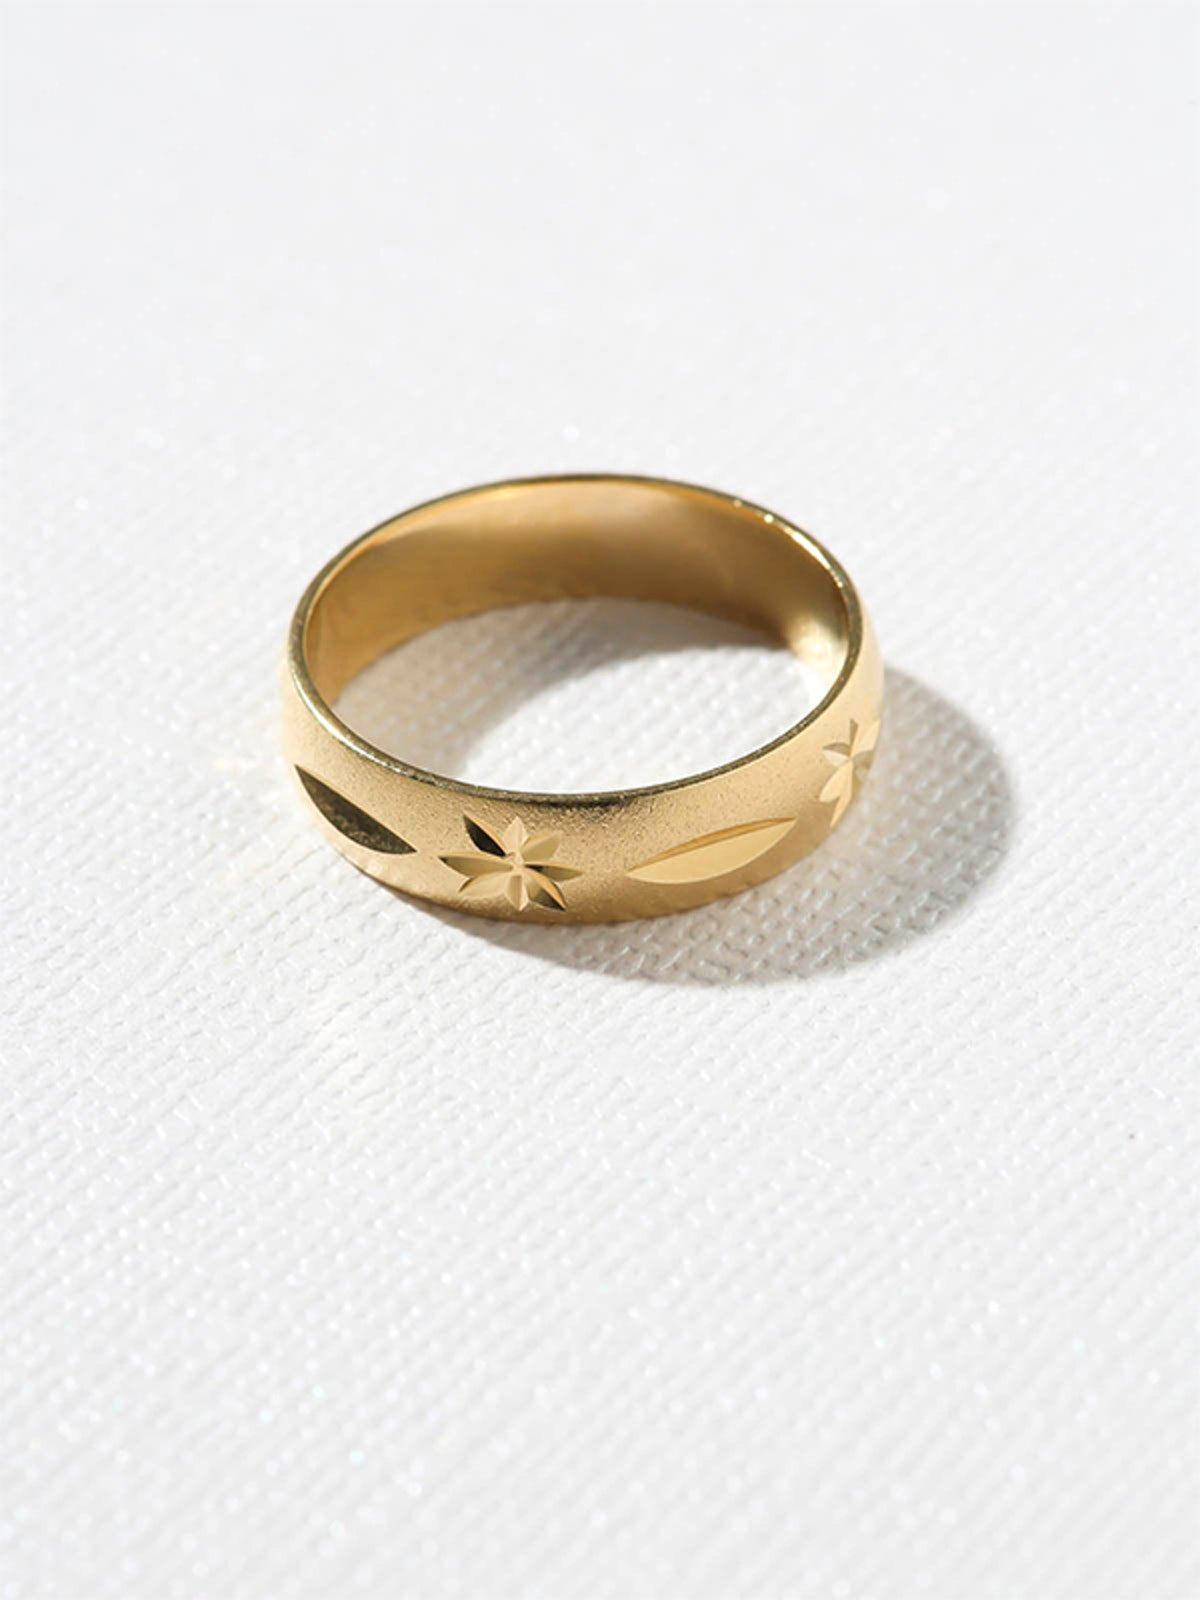 The Vintage Star Ring